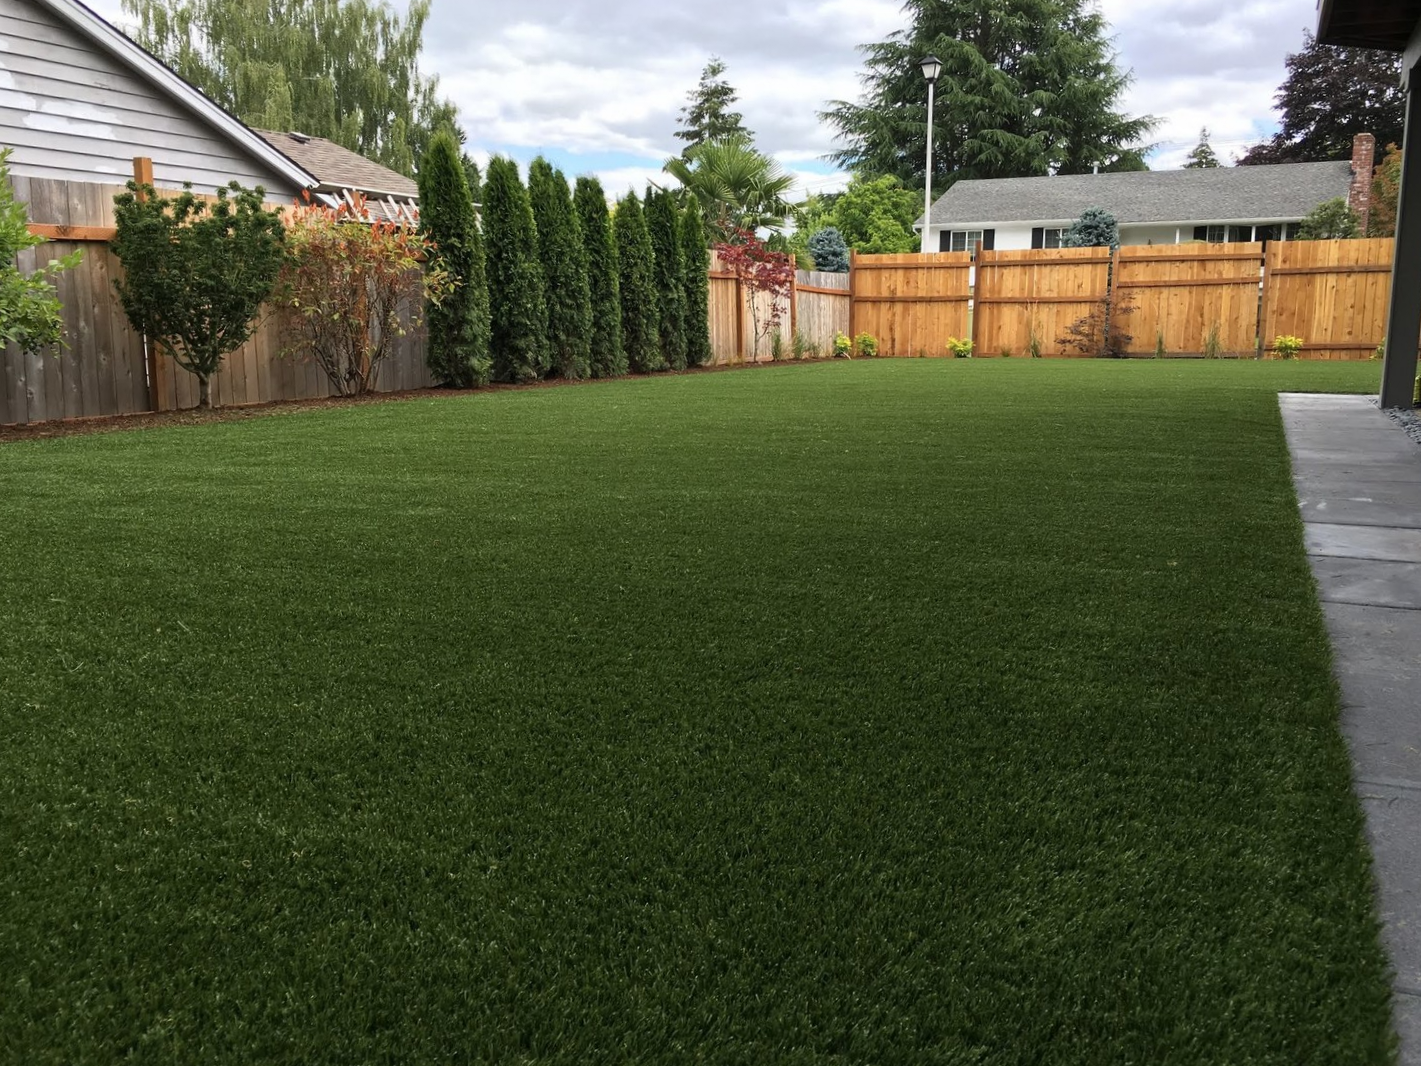 10 Reasons To Think Twice About Artificial Turf